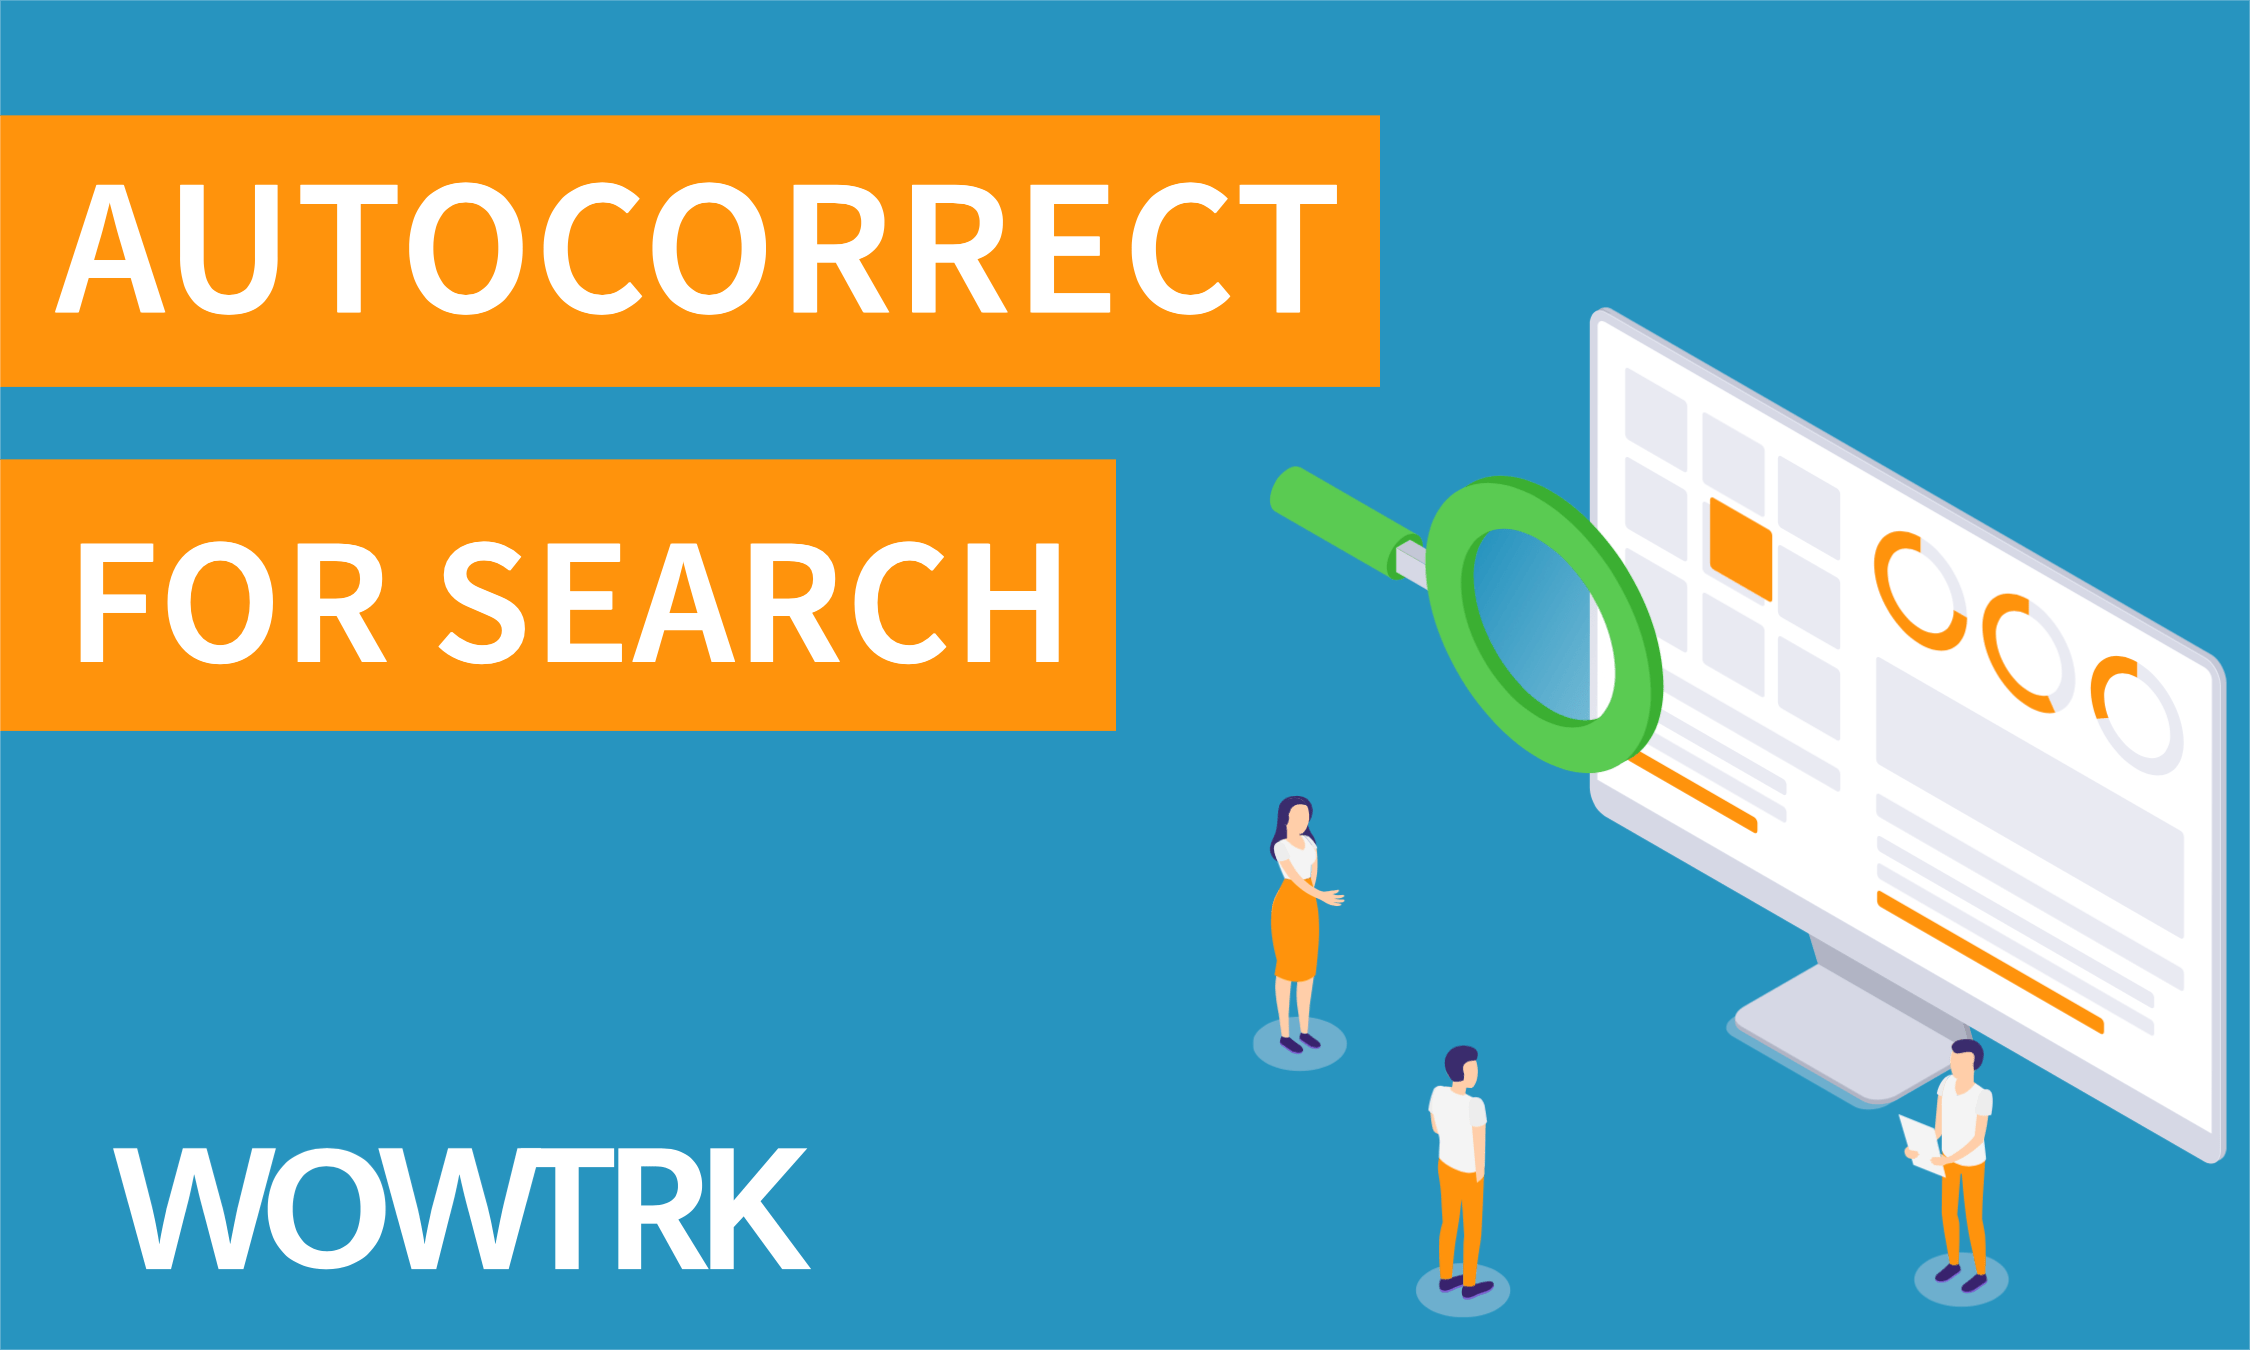 Autocorrect for search